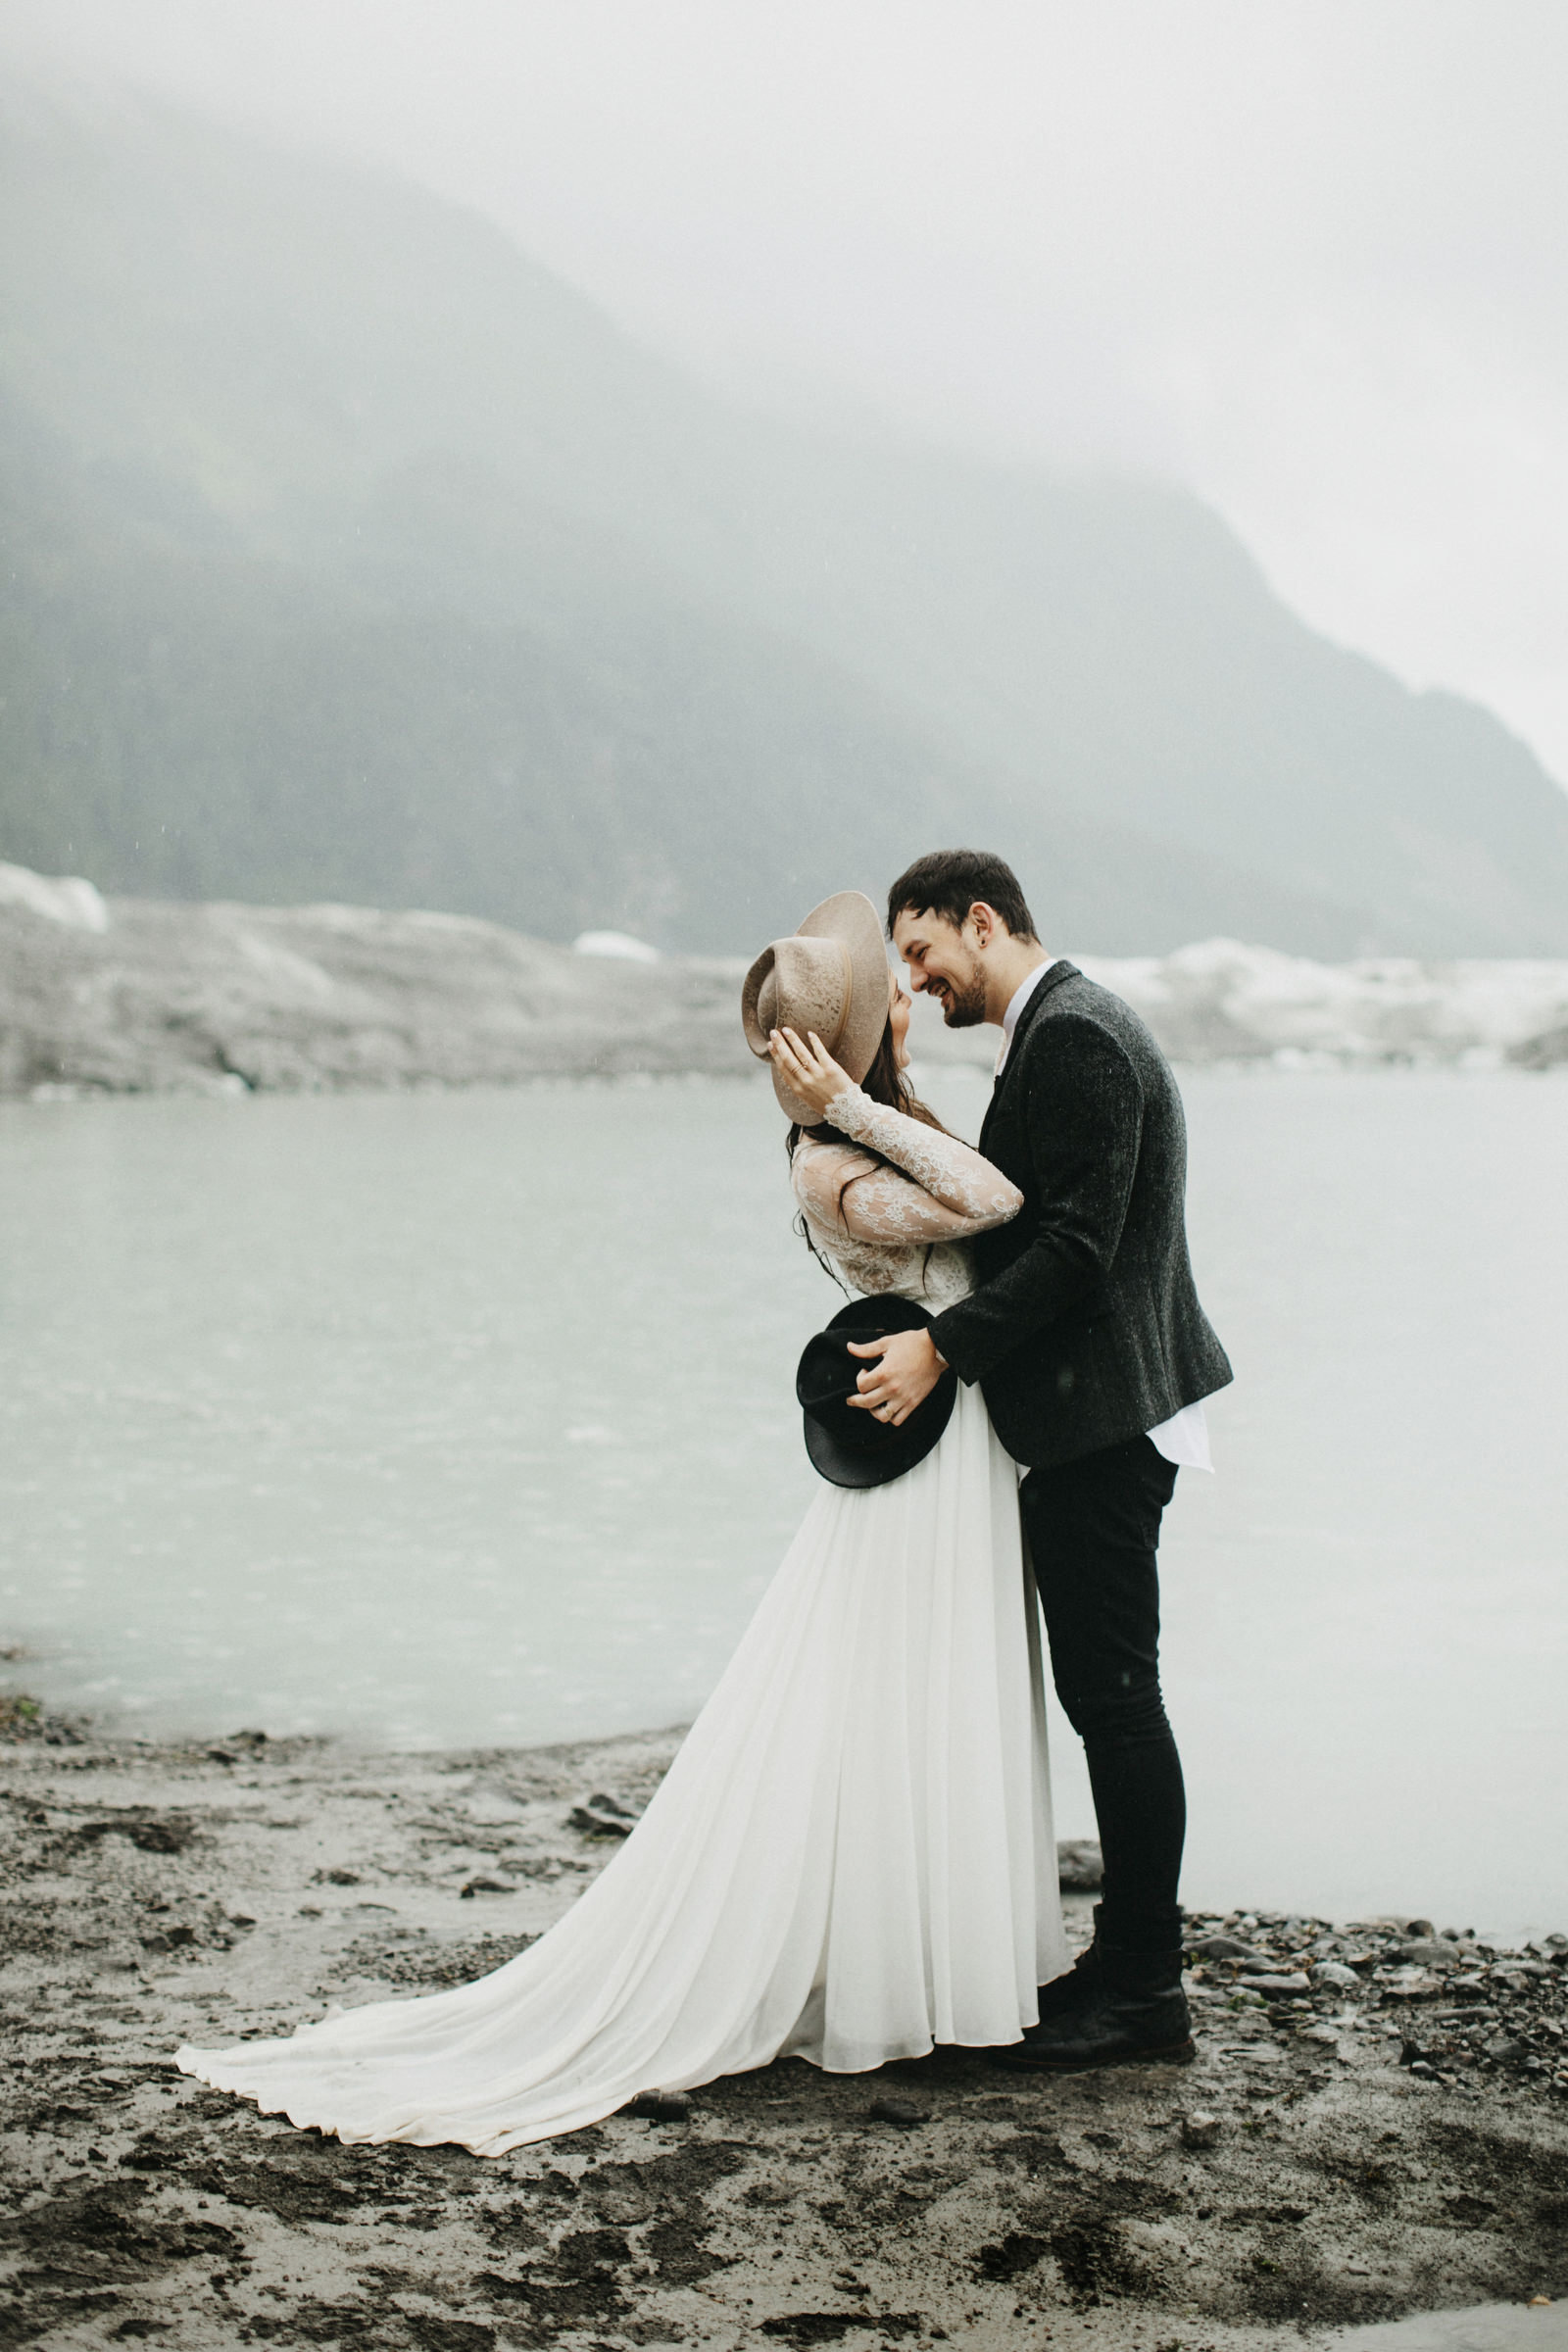 athena-and-camron-alaska-elopement-wedding-inspiration-india-earl-athena-grace-glacier-lagoon-wedding86